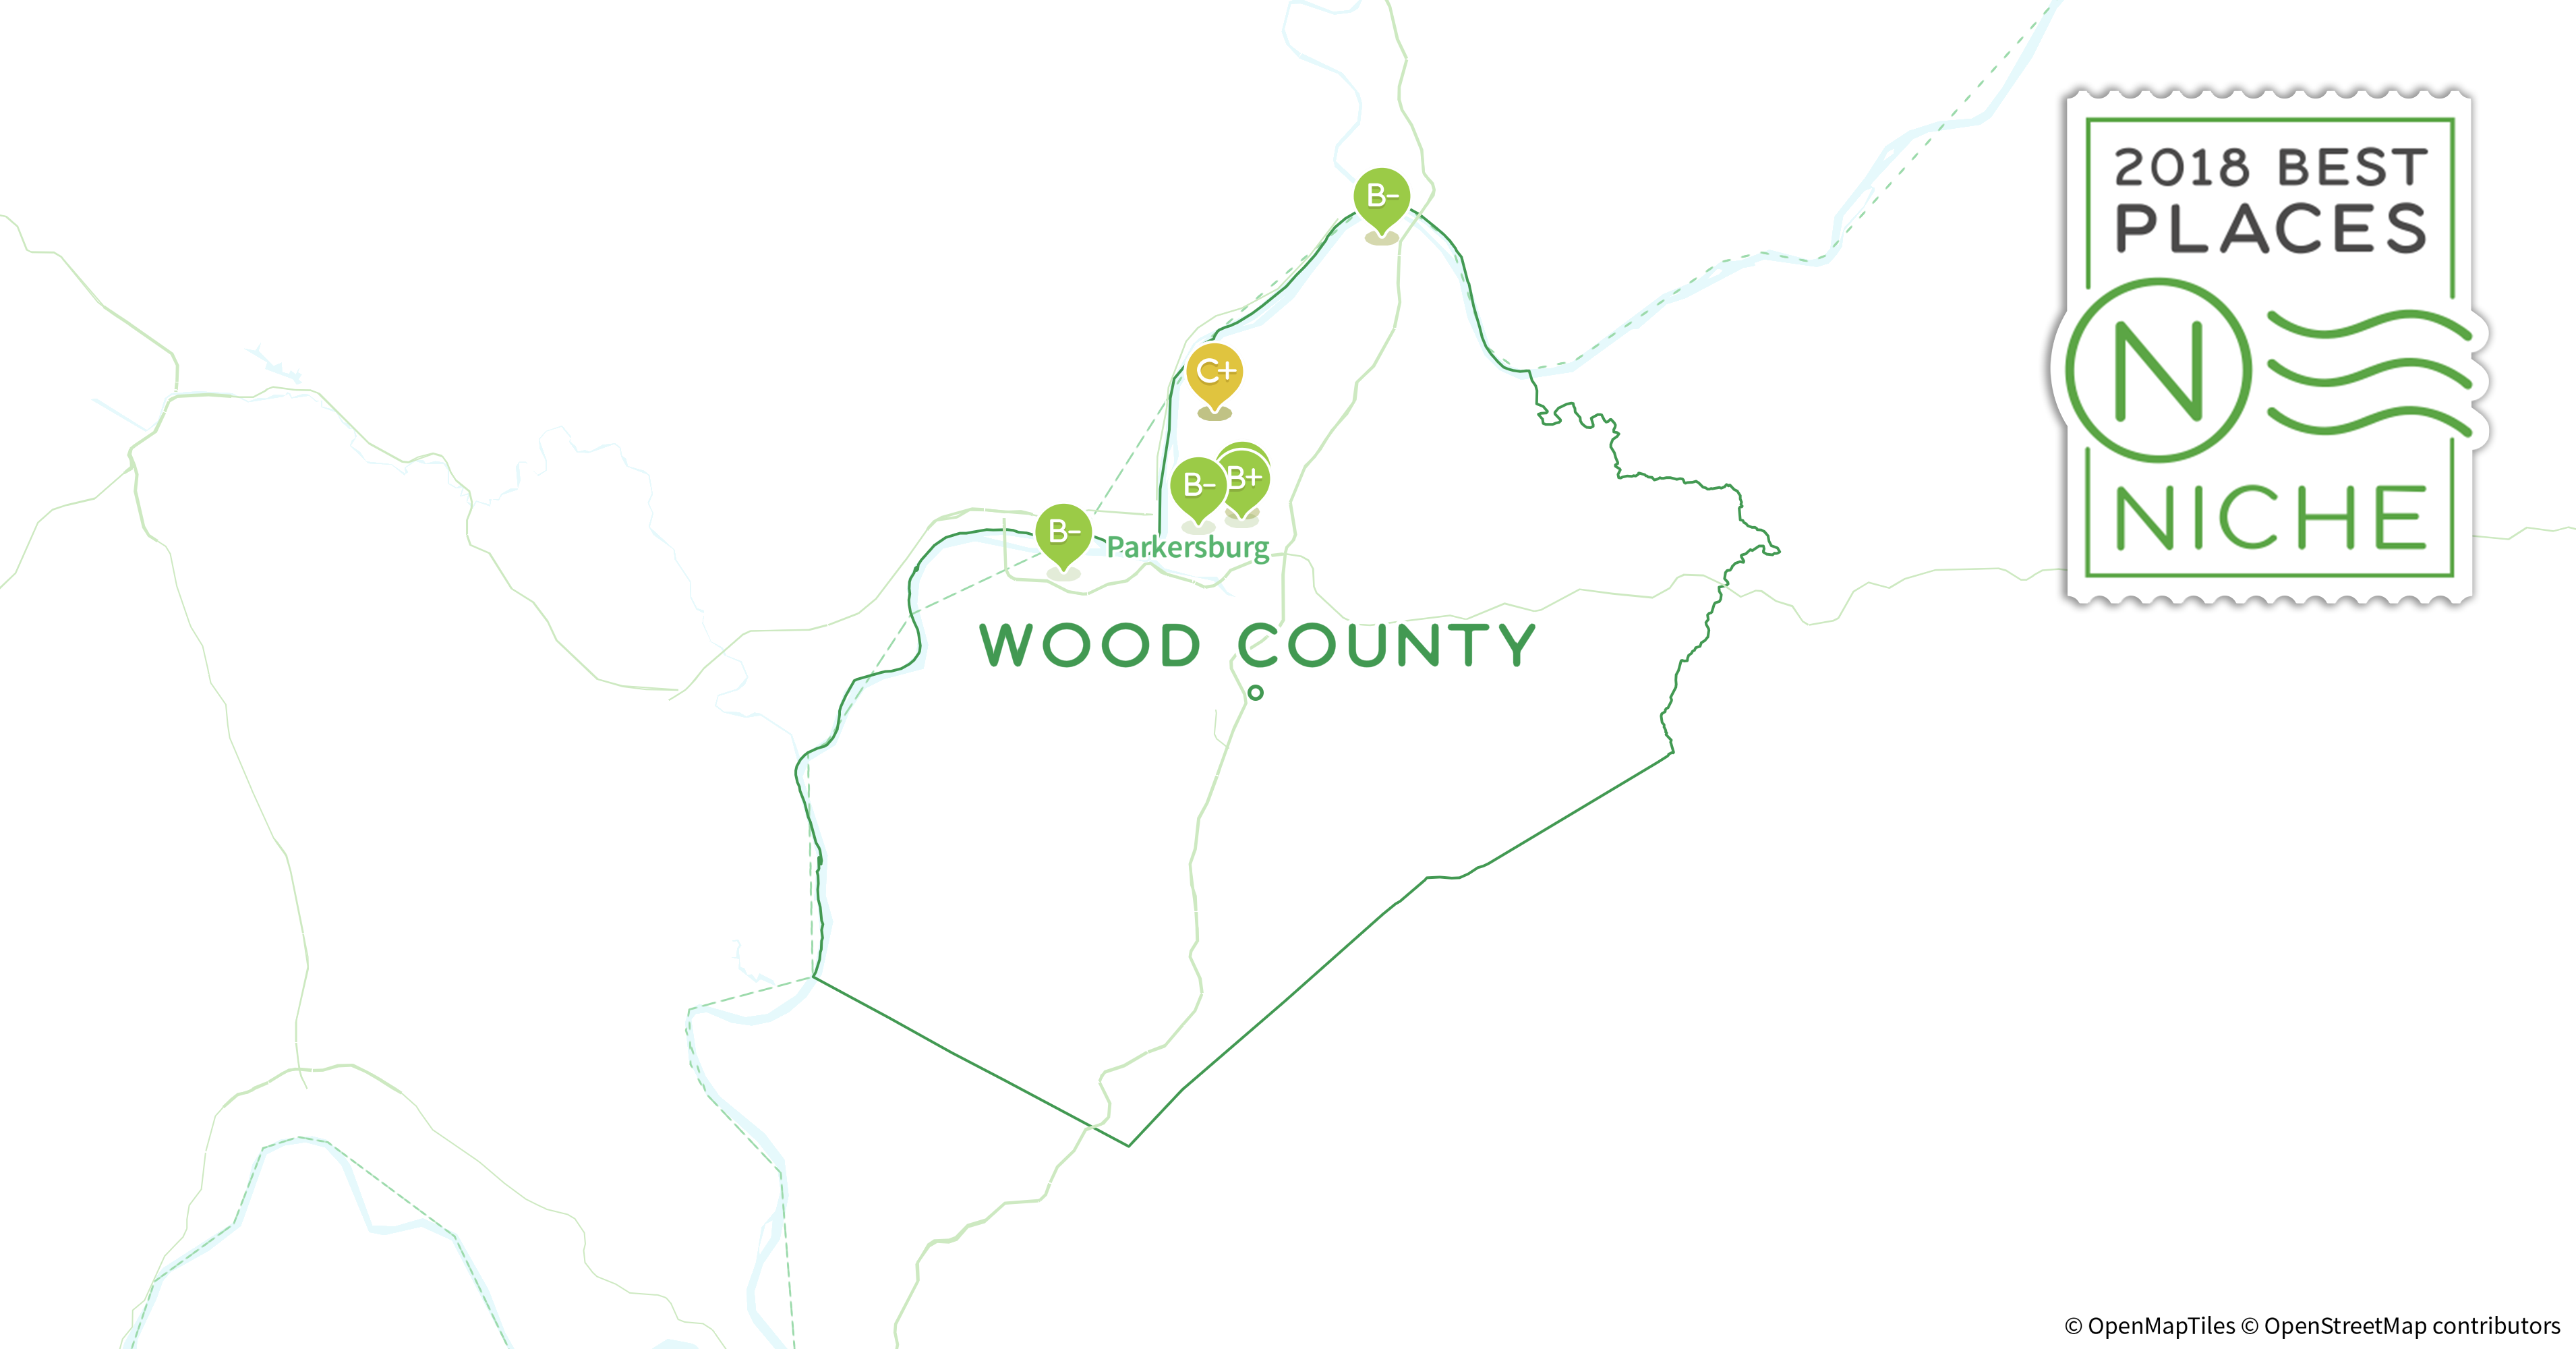 2018 Safest Places to Live in Wood County, WV - Niche